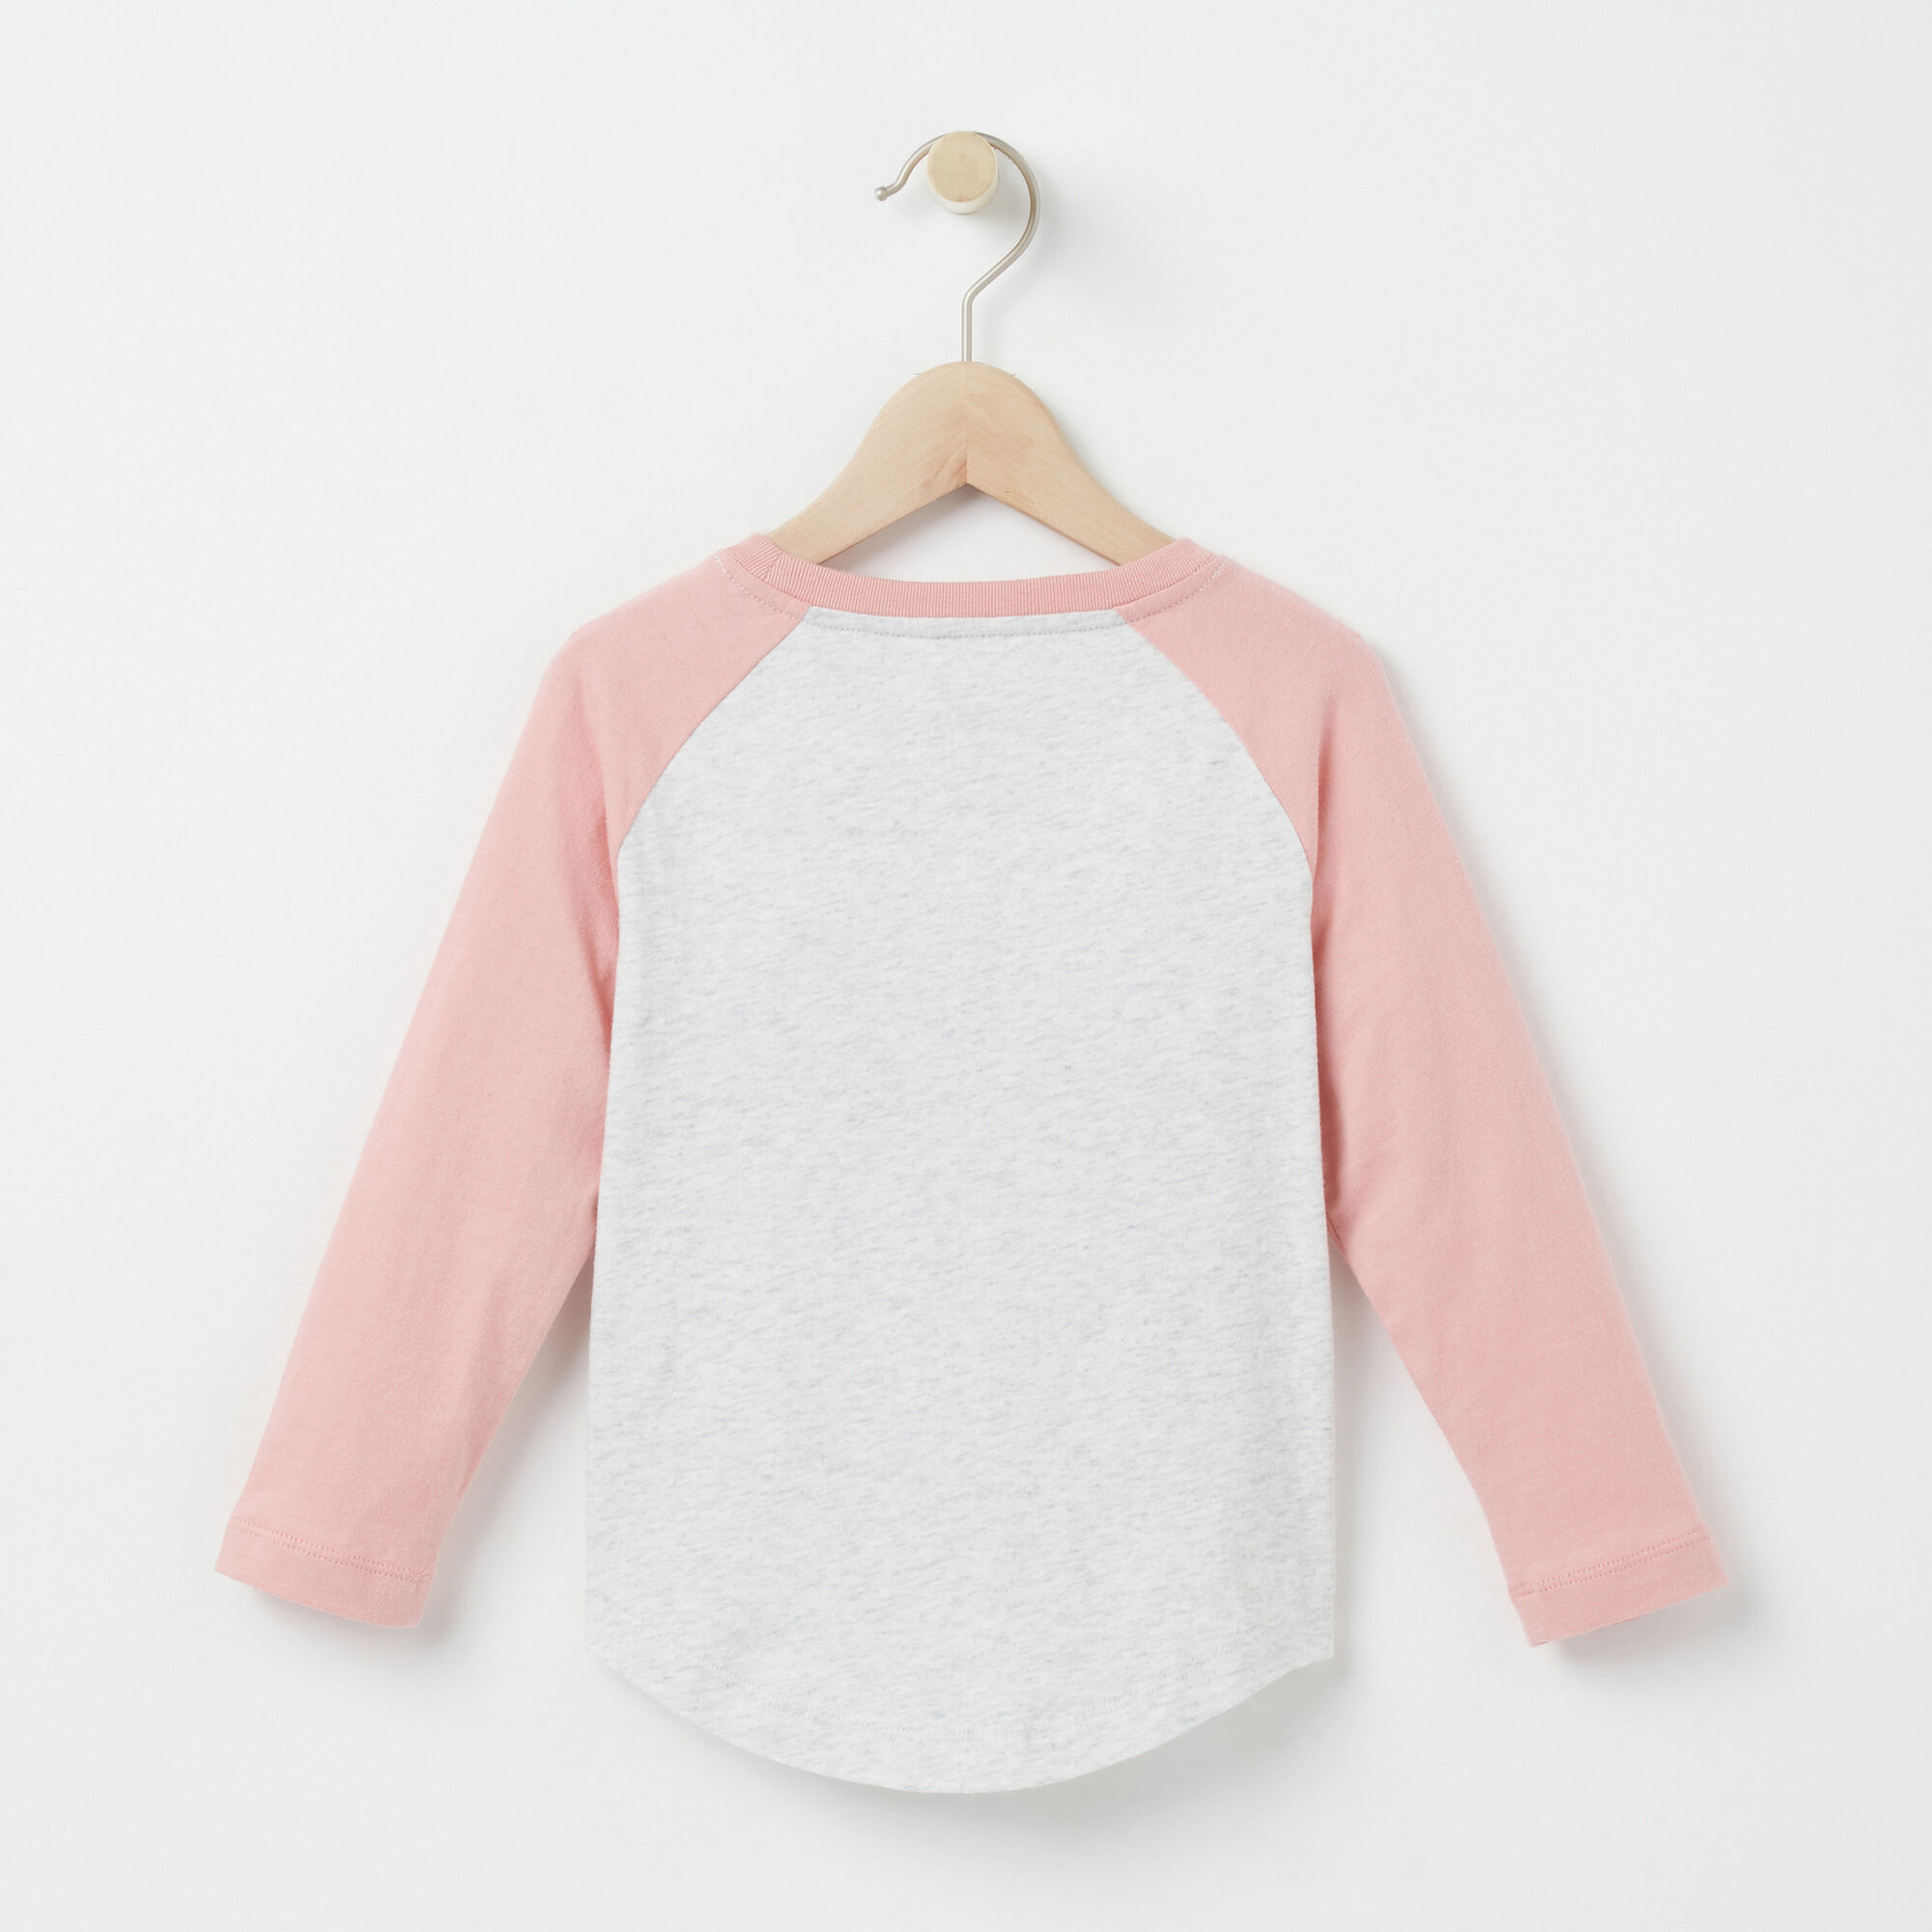 Toddler Sofie Raglan Top